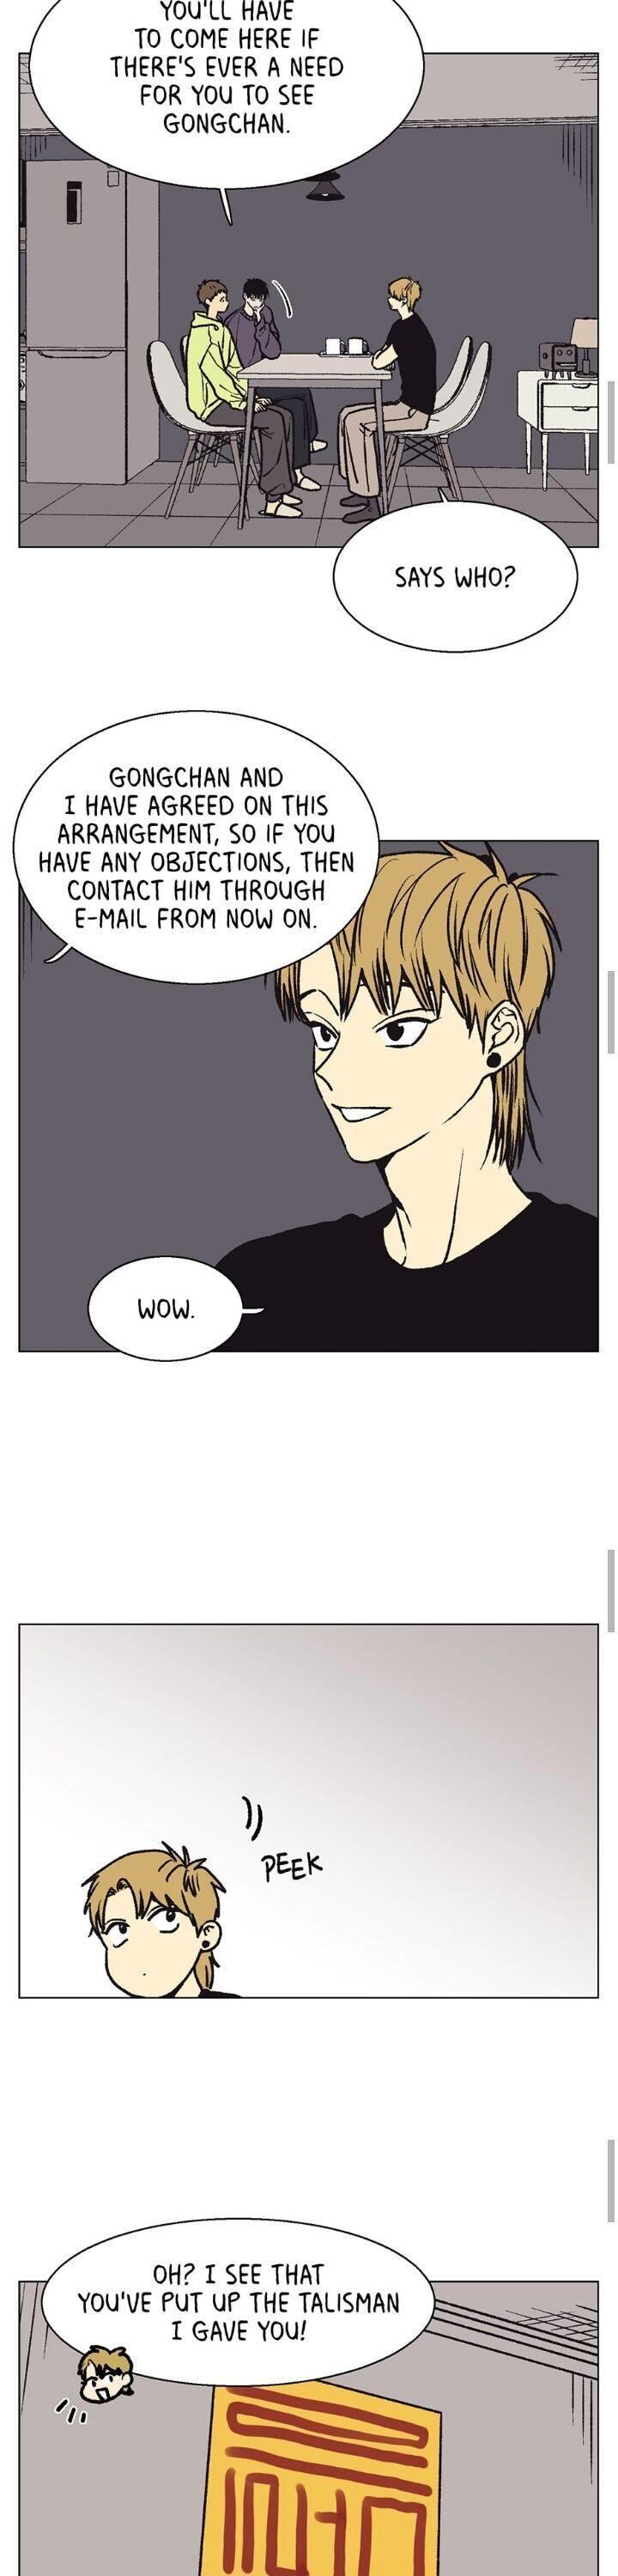 The Spooky Love Tale Of Gongchan Seol Chapter 51 page 8 - Mangakakalots.com